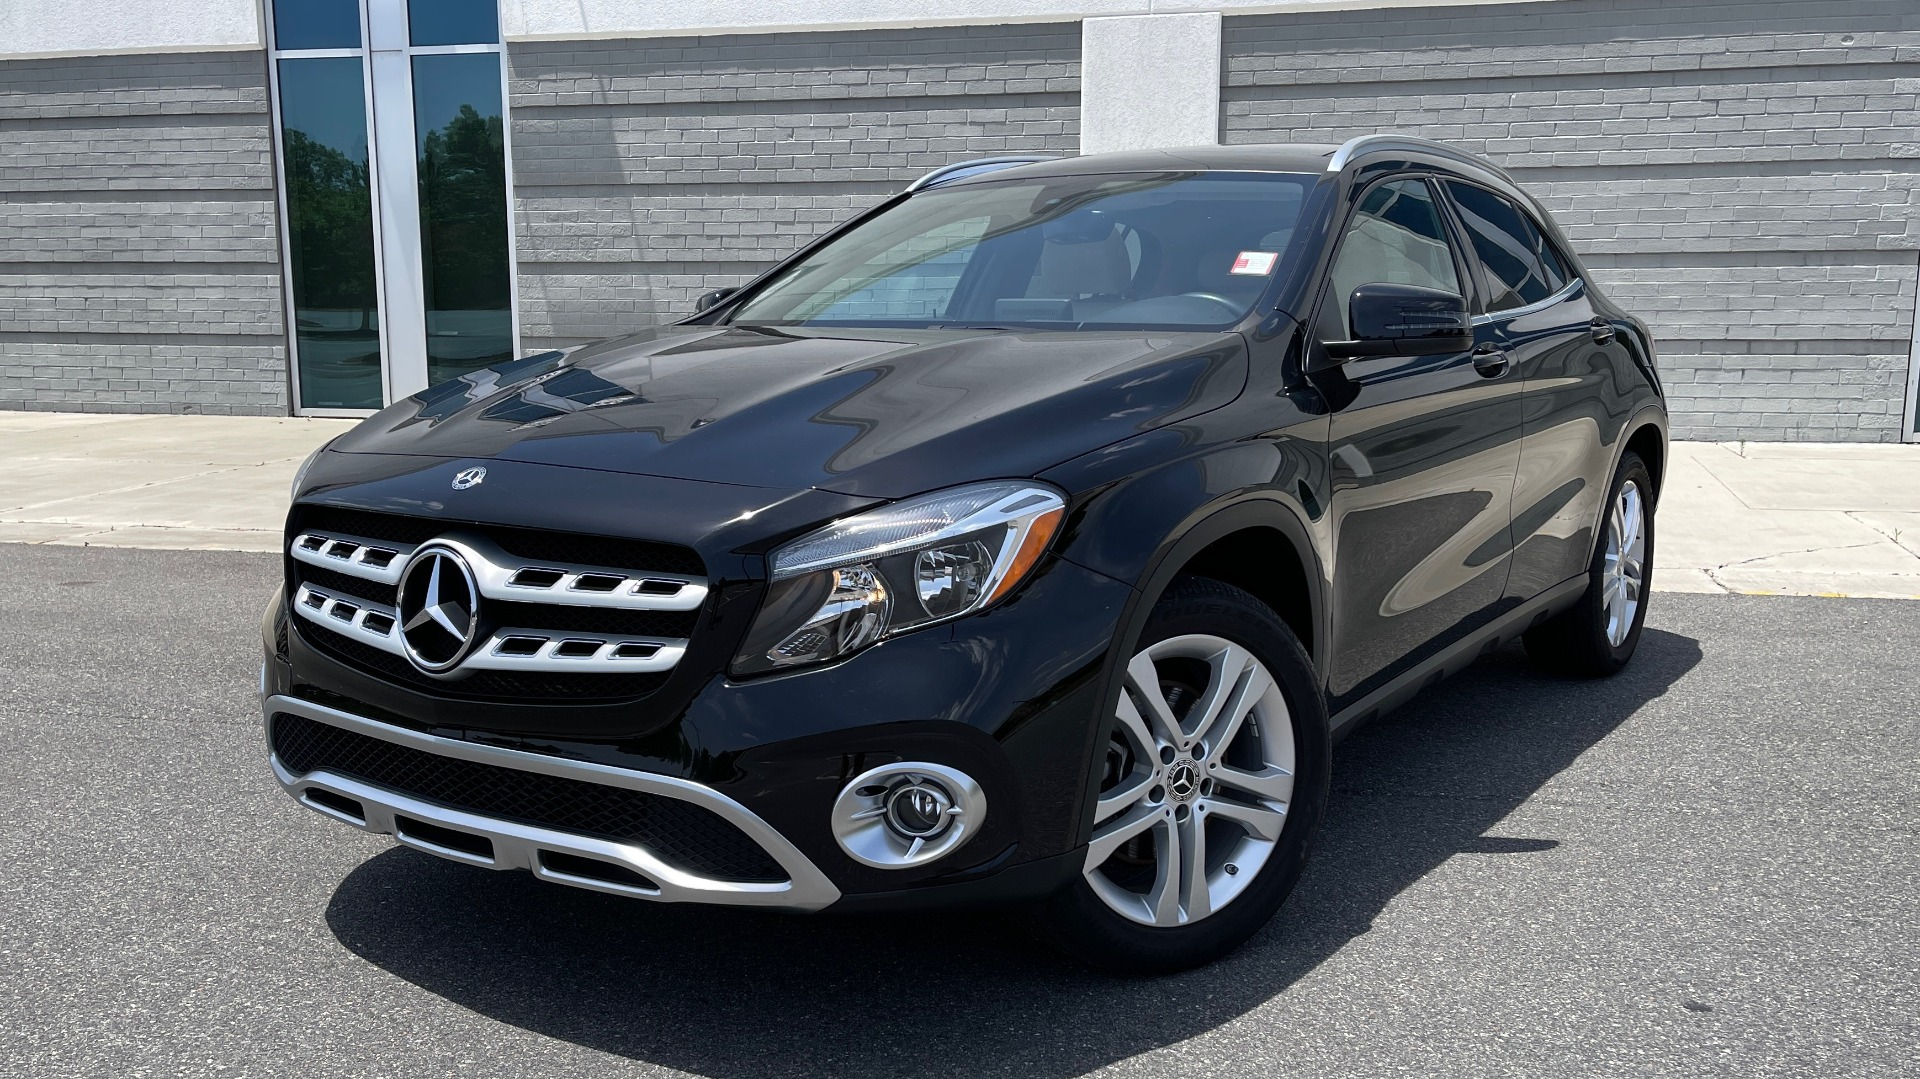 Used 2018 Mercedes-Benz GLA 250 4MATIC SUV / PANO-ROOF / HTD STS / BLIND SPOT ASST / APPLE for sale $31,995 at Formula Imports in Charlotte NC 28227 1